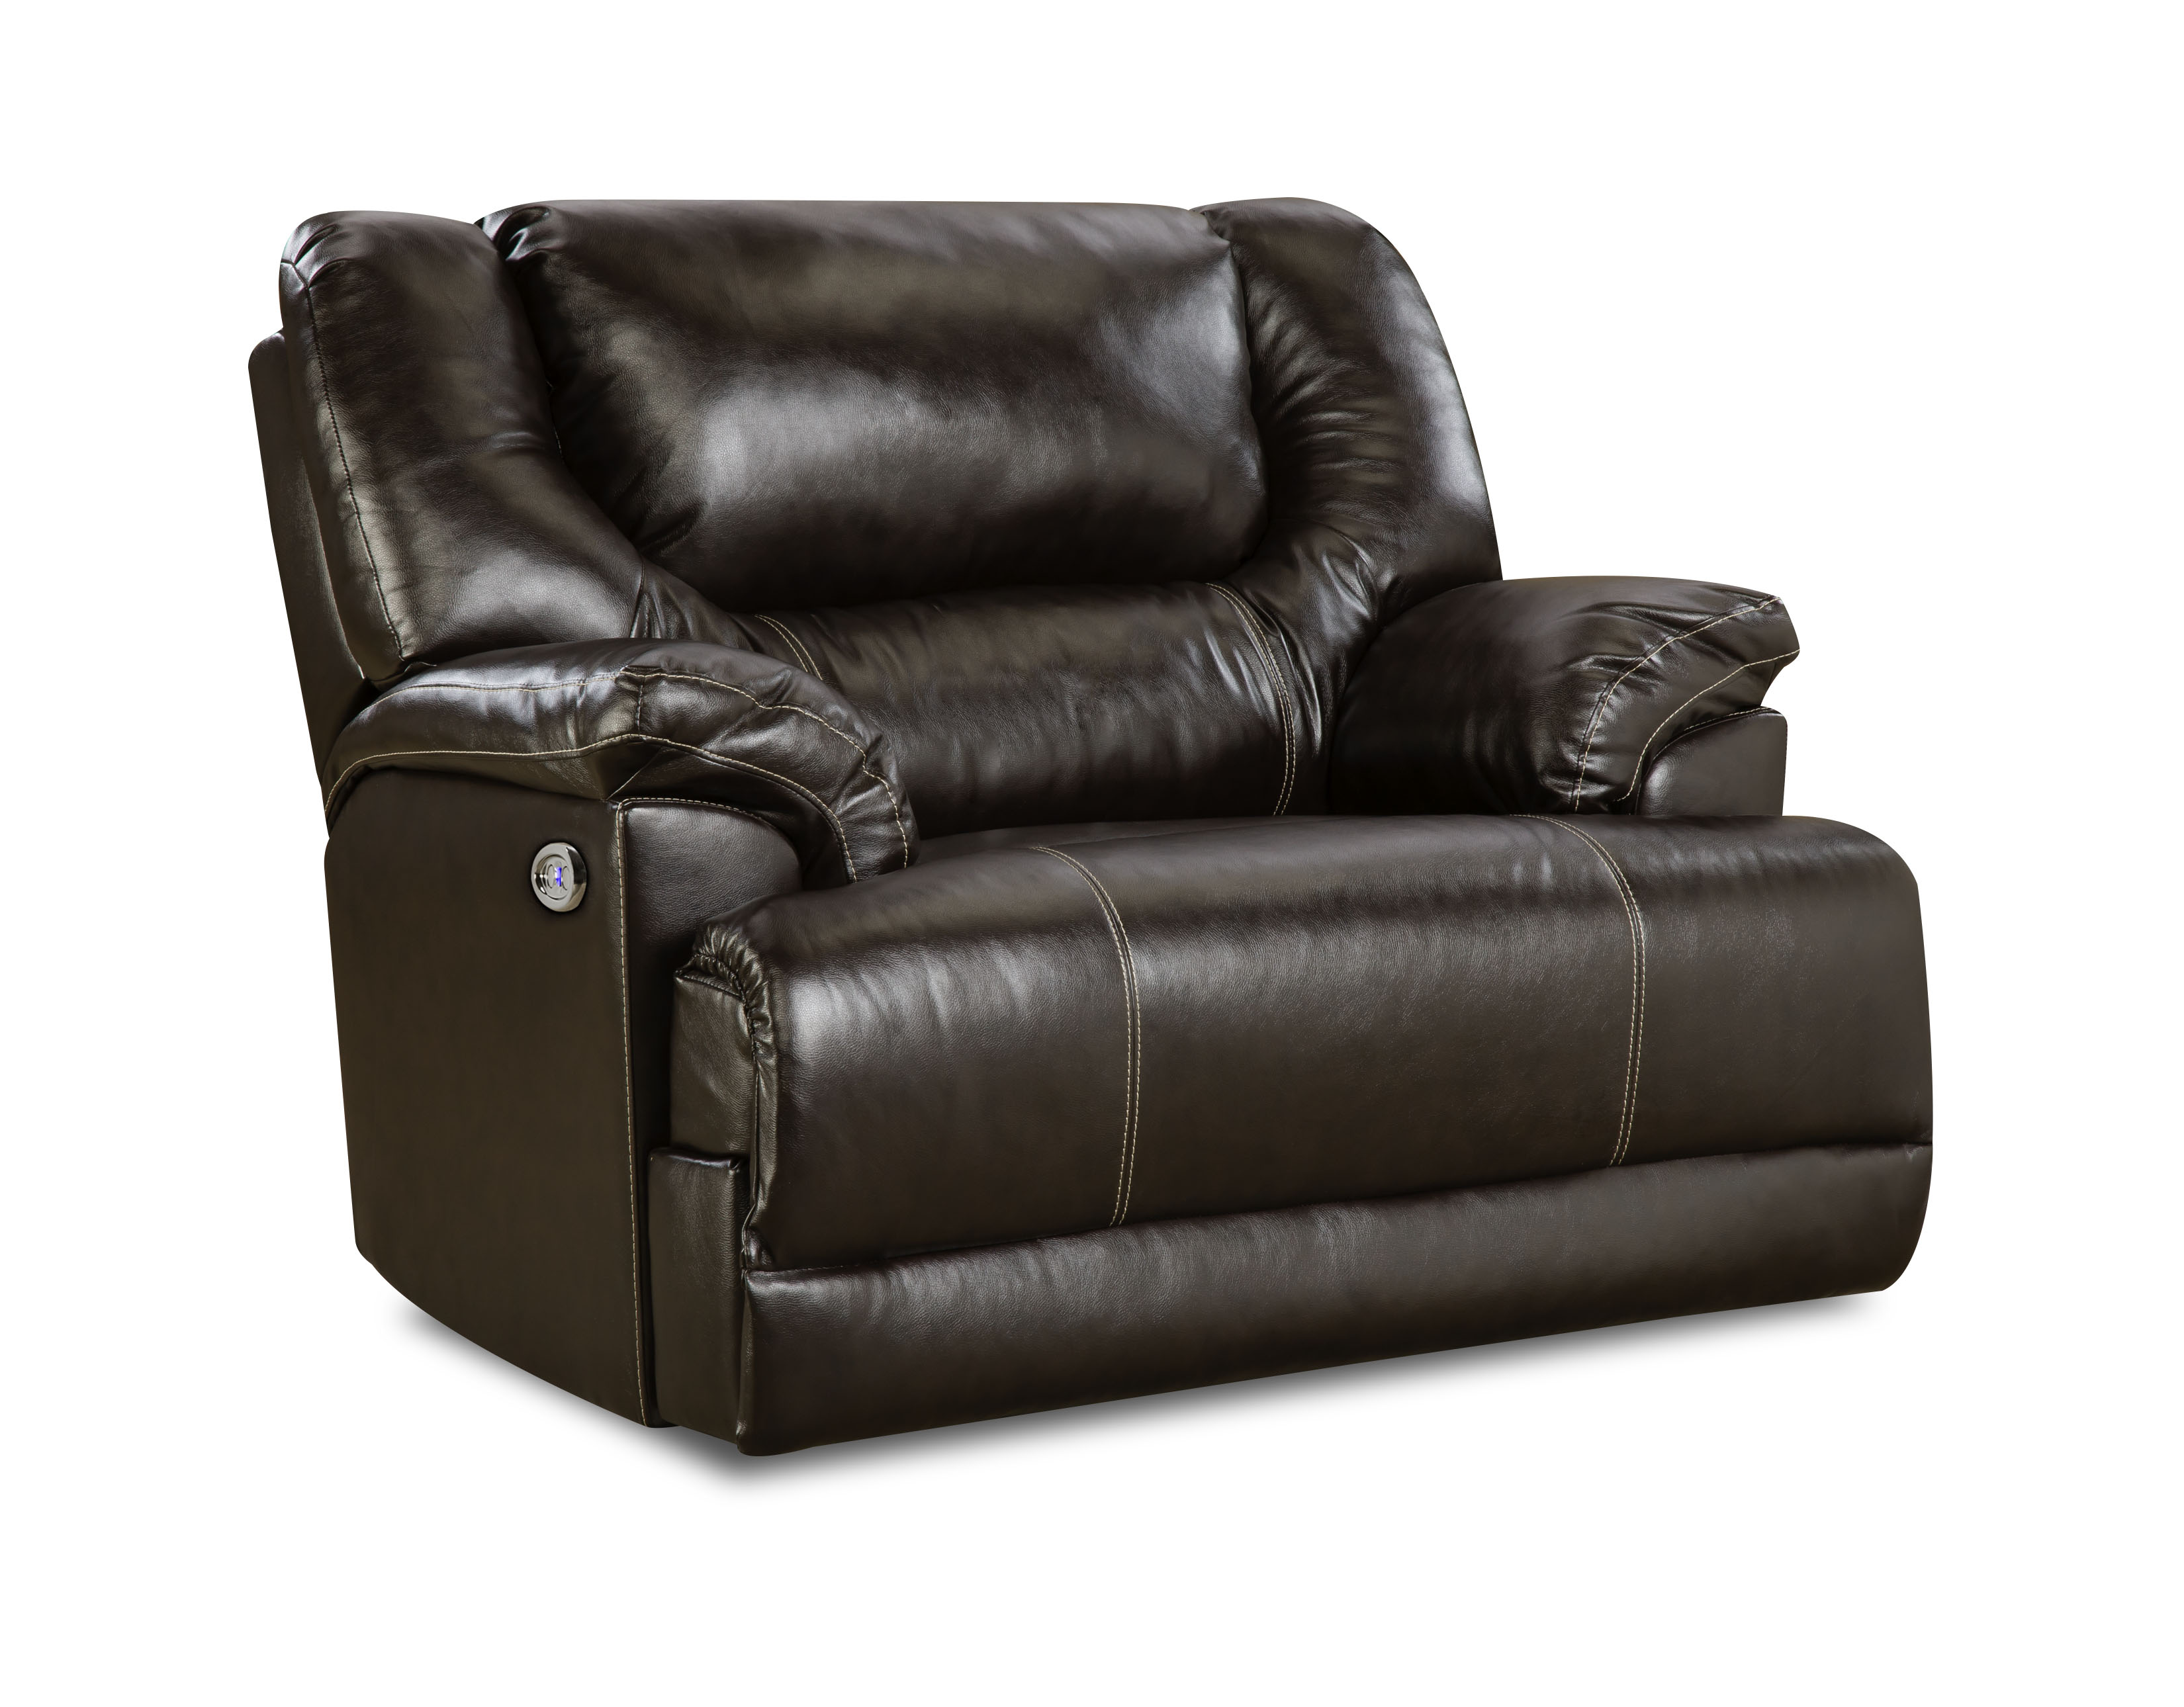 Sears Accent Chairs Check Out Simmons Upholstery Bentley Power Cuddler Recliner Bingo Brown Shopyourway